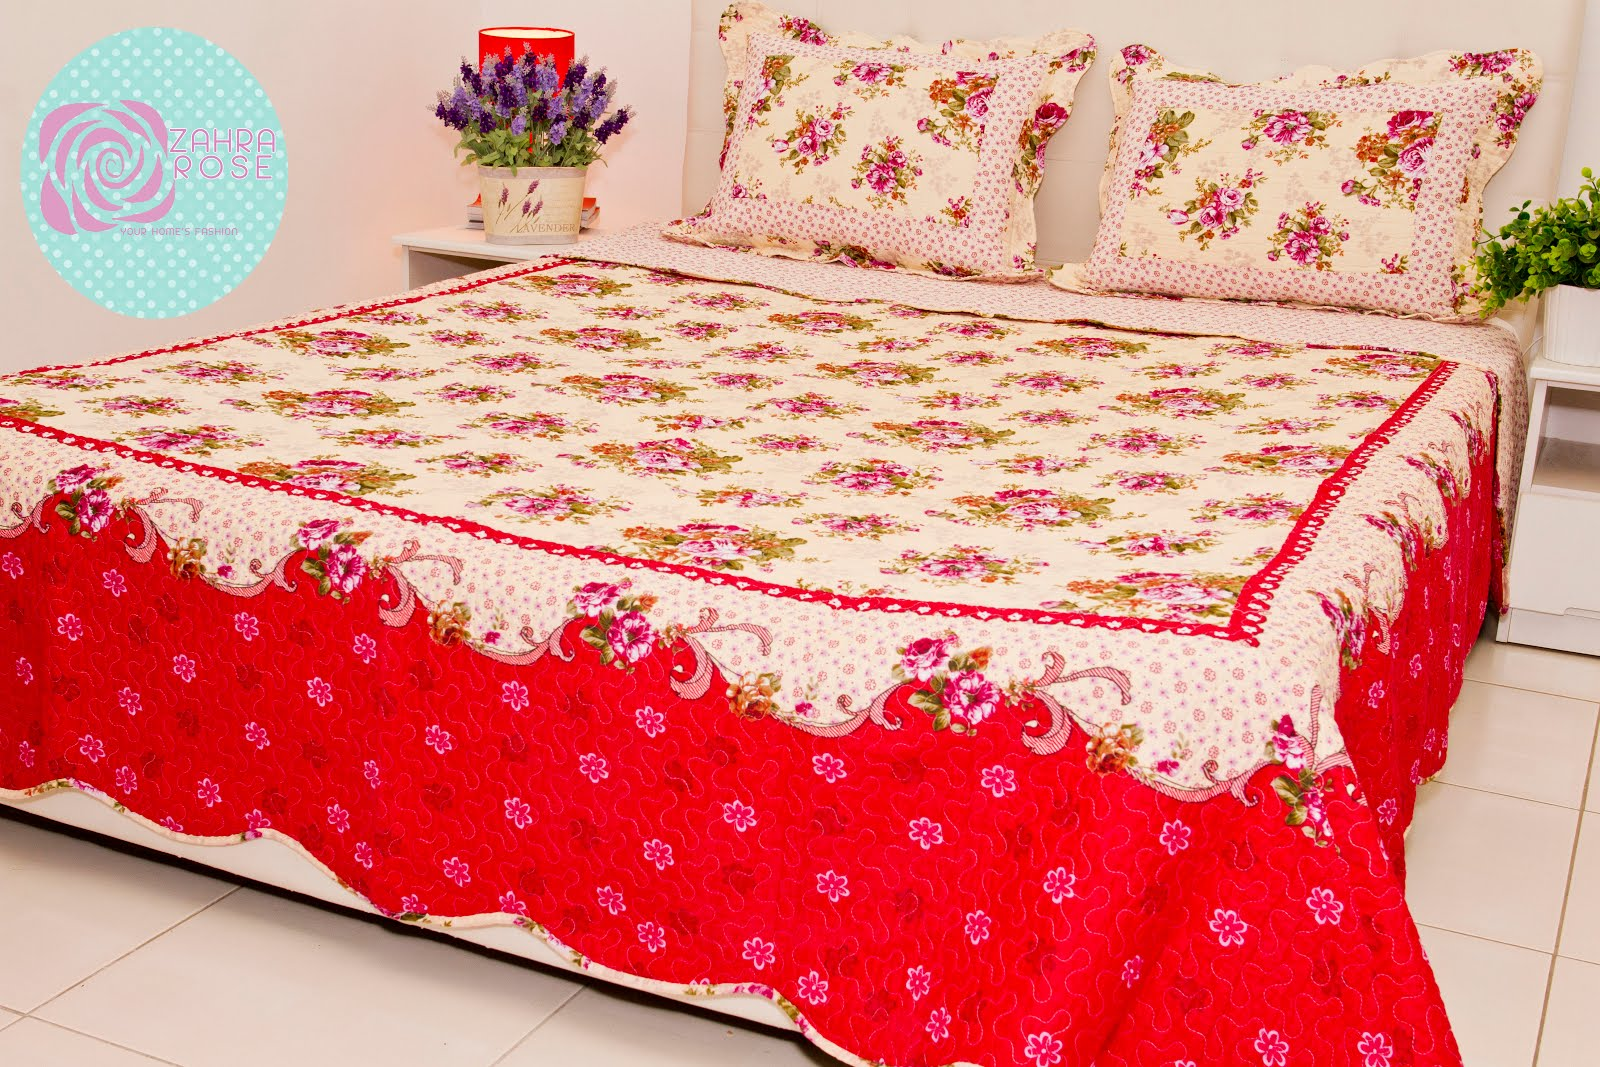 Patchwork bed sheets patterns - Zahra Rose Design Cotton Patchwork Bed Sheet